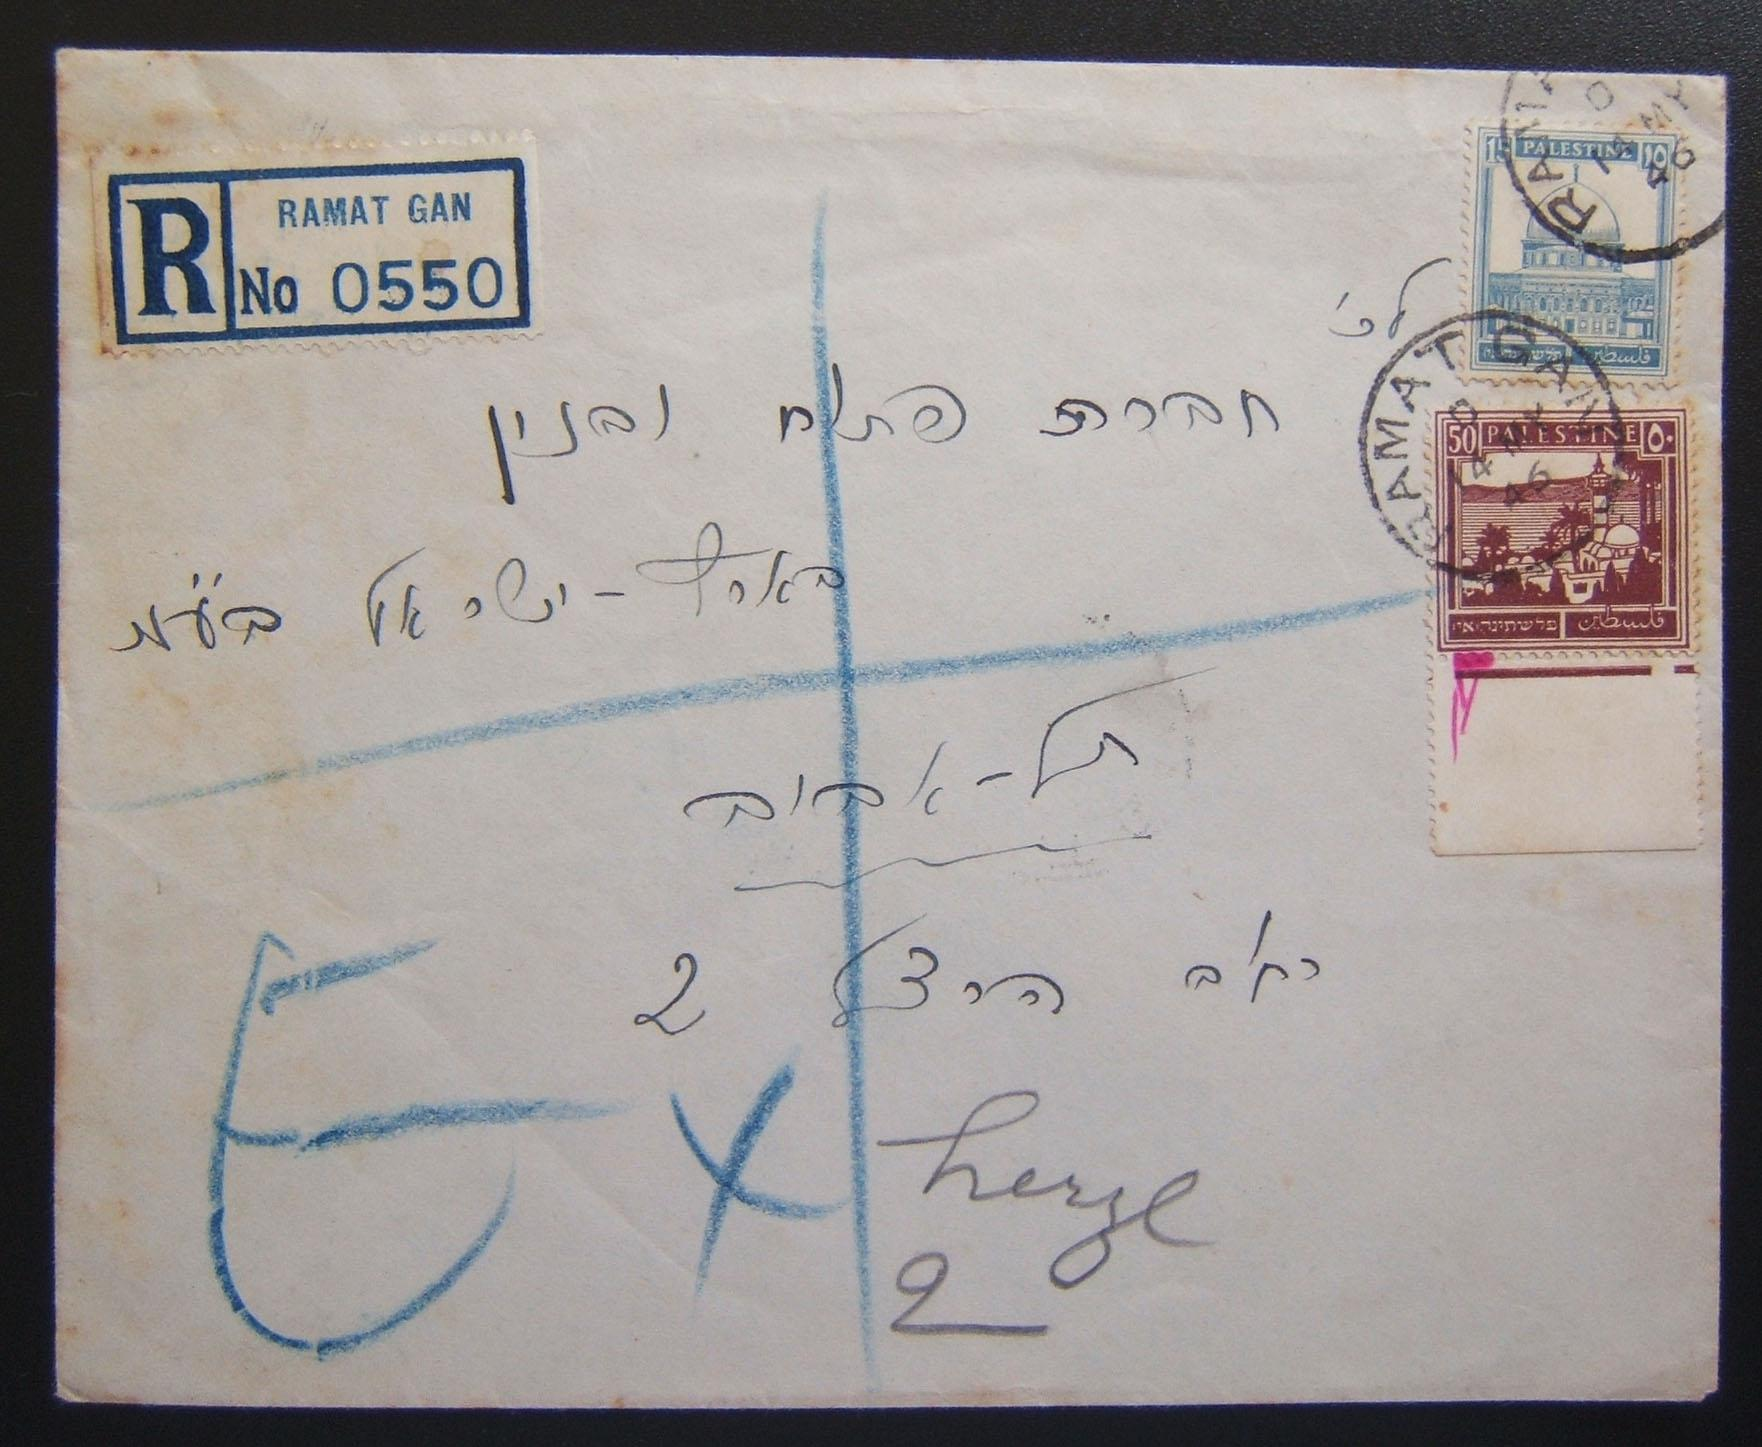 1946 Mandatory registered express mail: 14 MY 46 reg. ex. comm cv ex flower shop in RAMAT GAN to business in TLV, correctly franked 65m (50m express + 15m reg fee) using pictorals